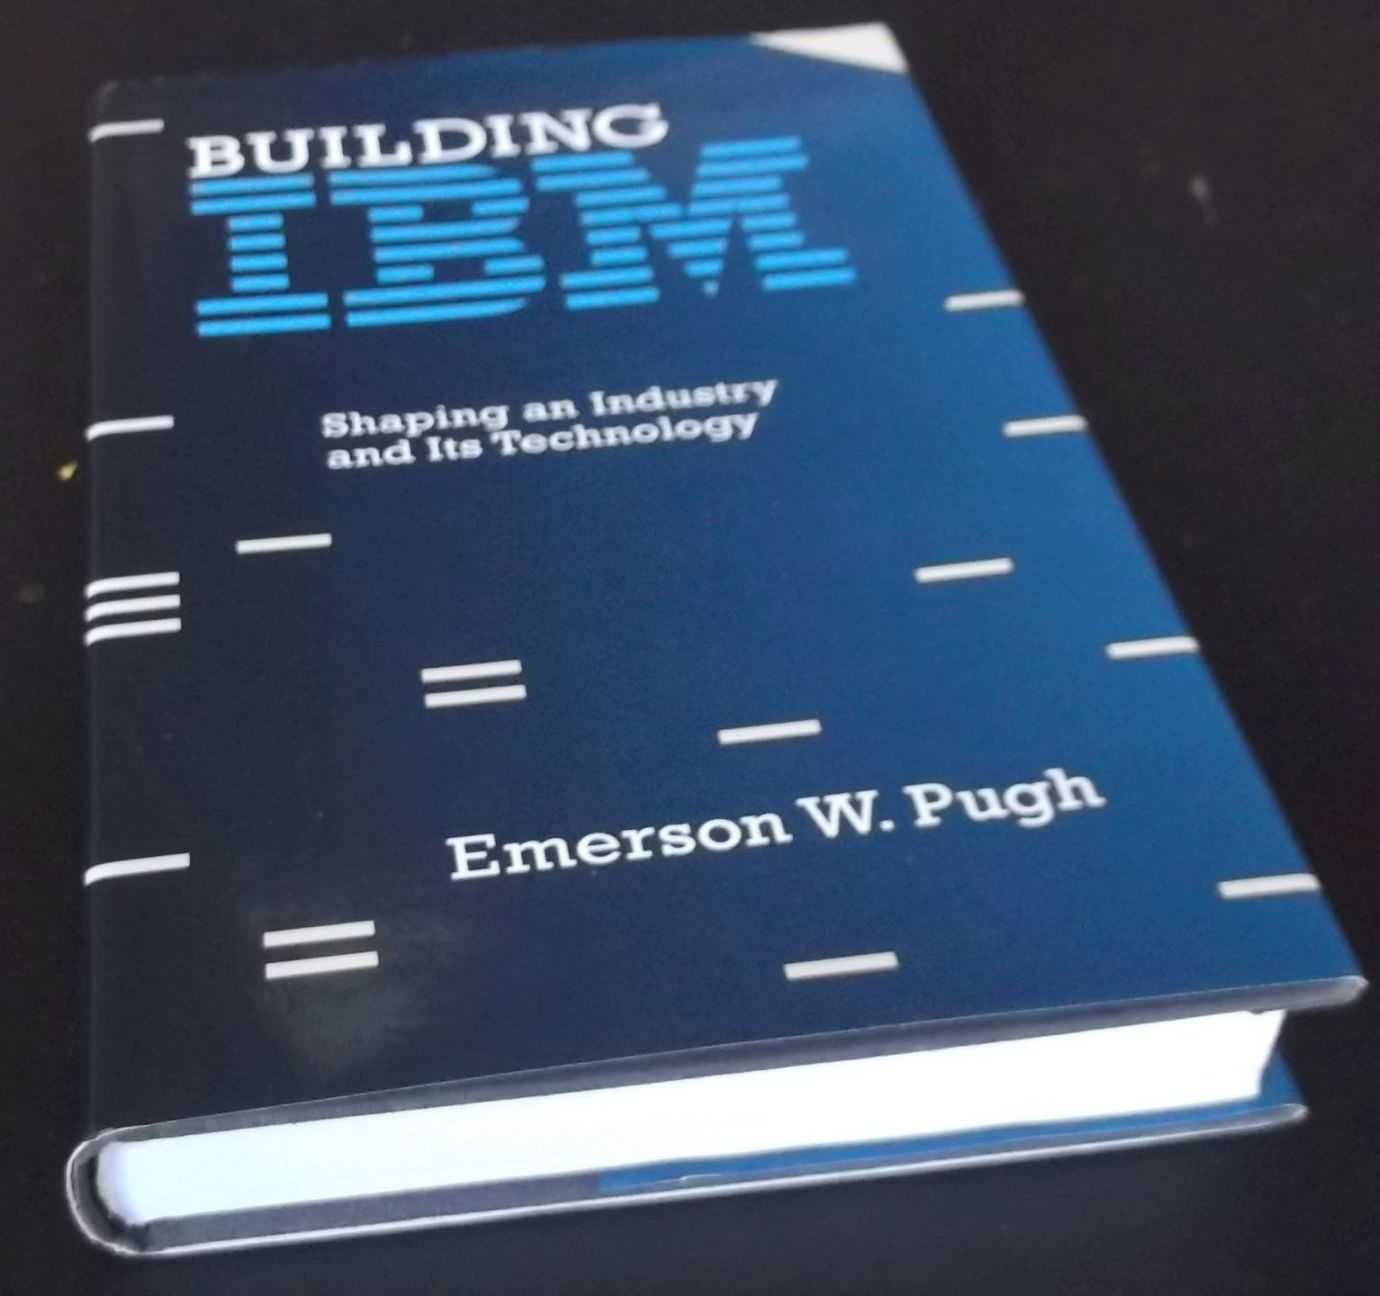 EMERSON W. PUGH - Building IBM: Shaping an Industry and Its Technology